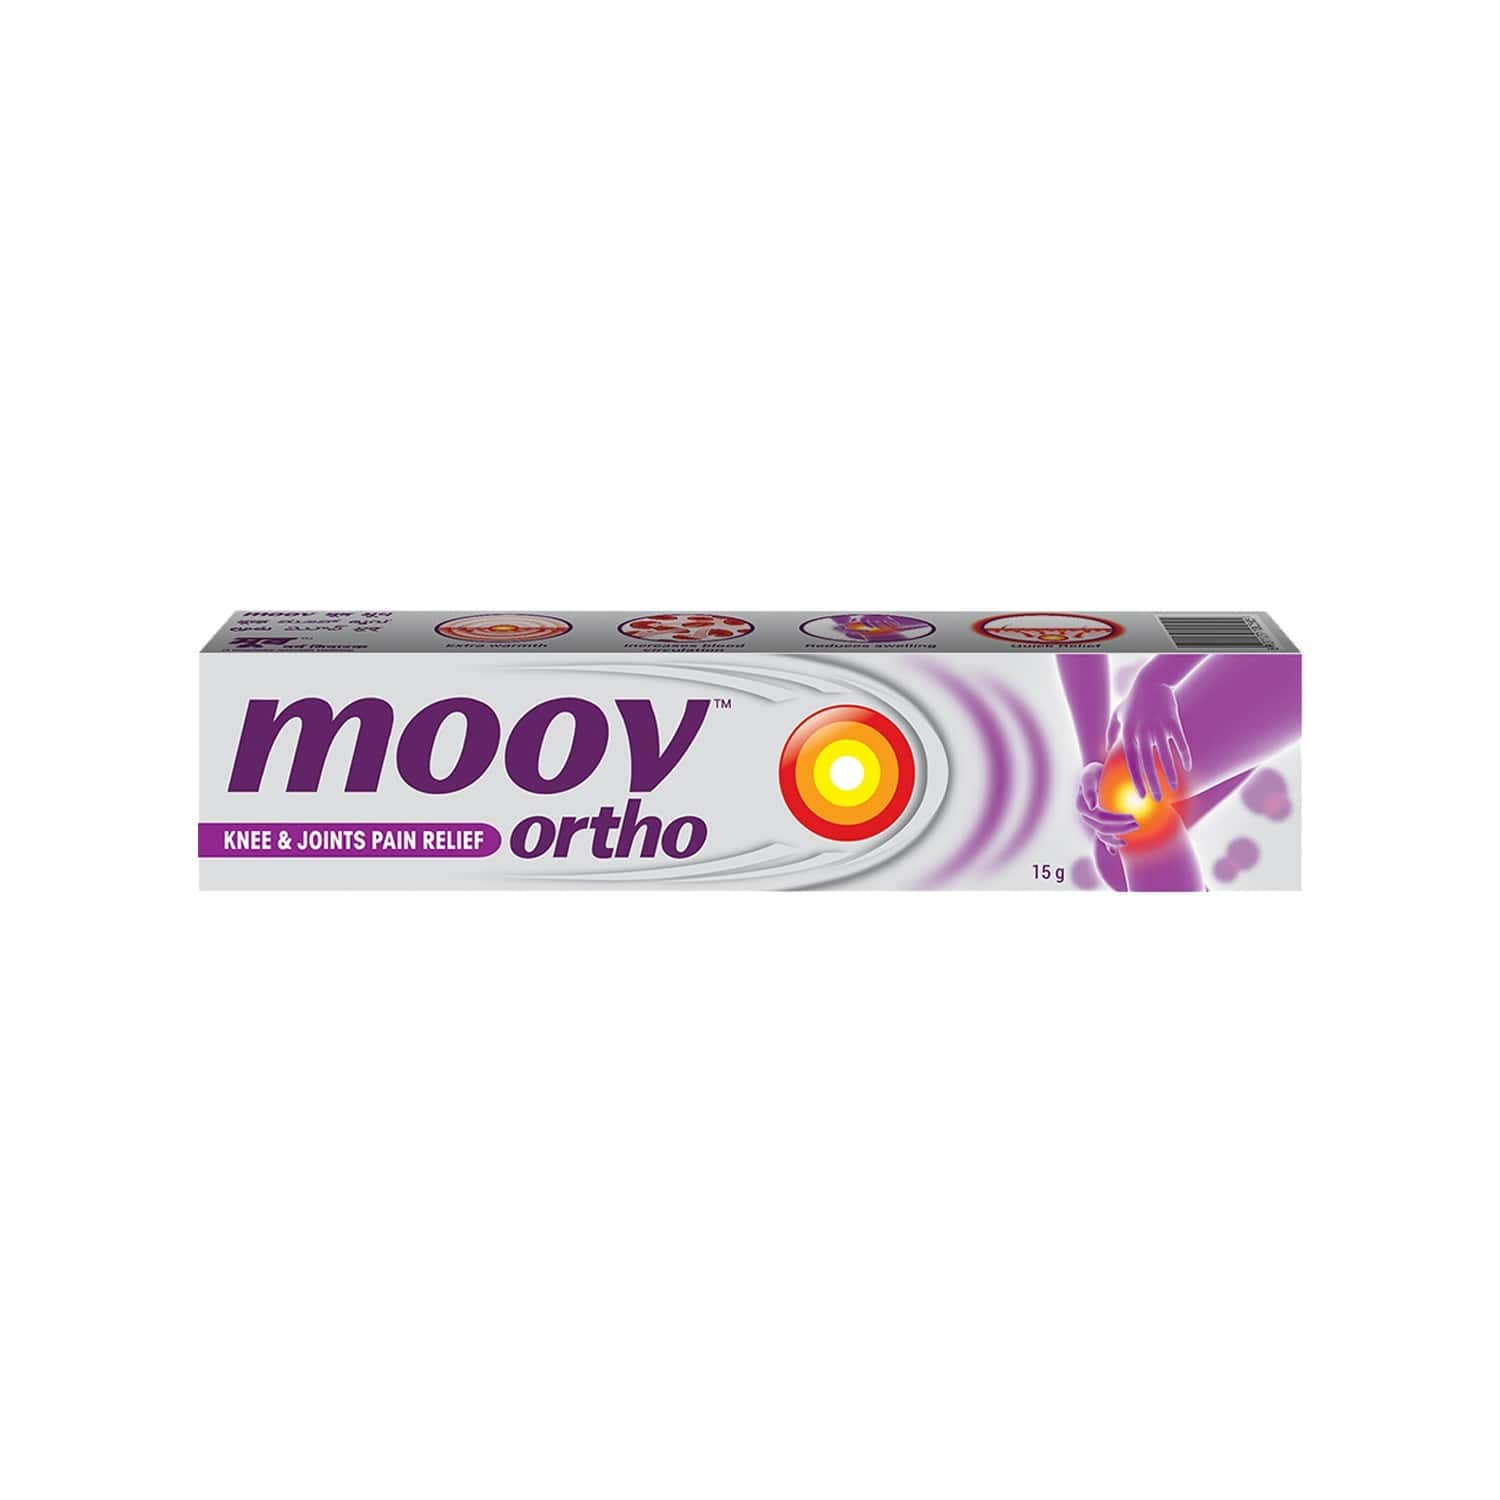 Moov Ortho, Knee & Joints Pain Relief Cream – 15 G